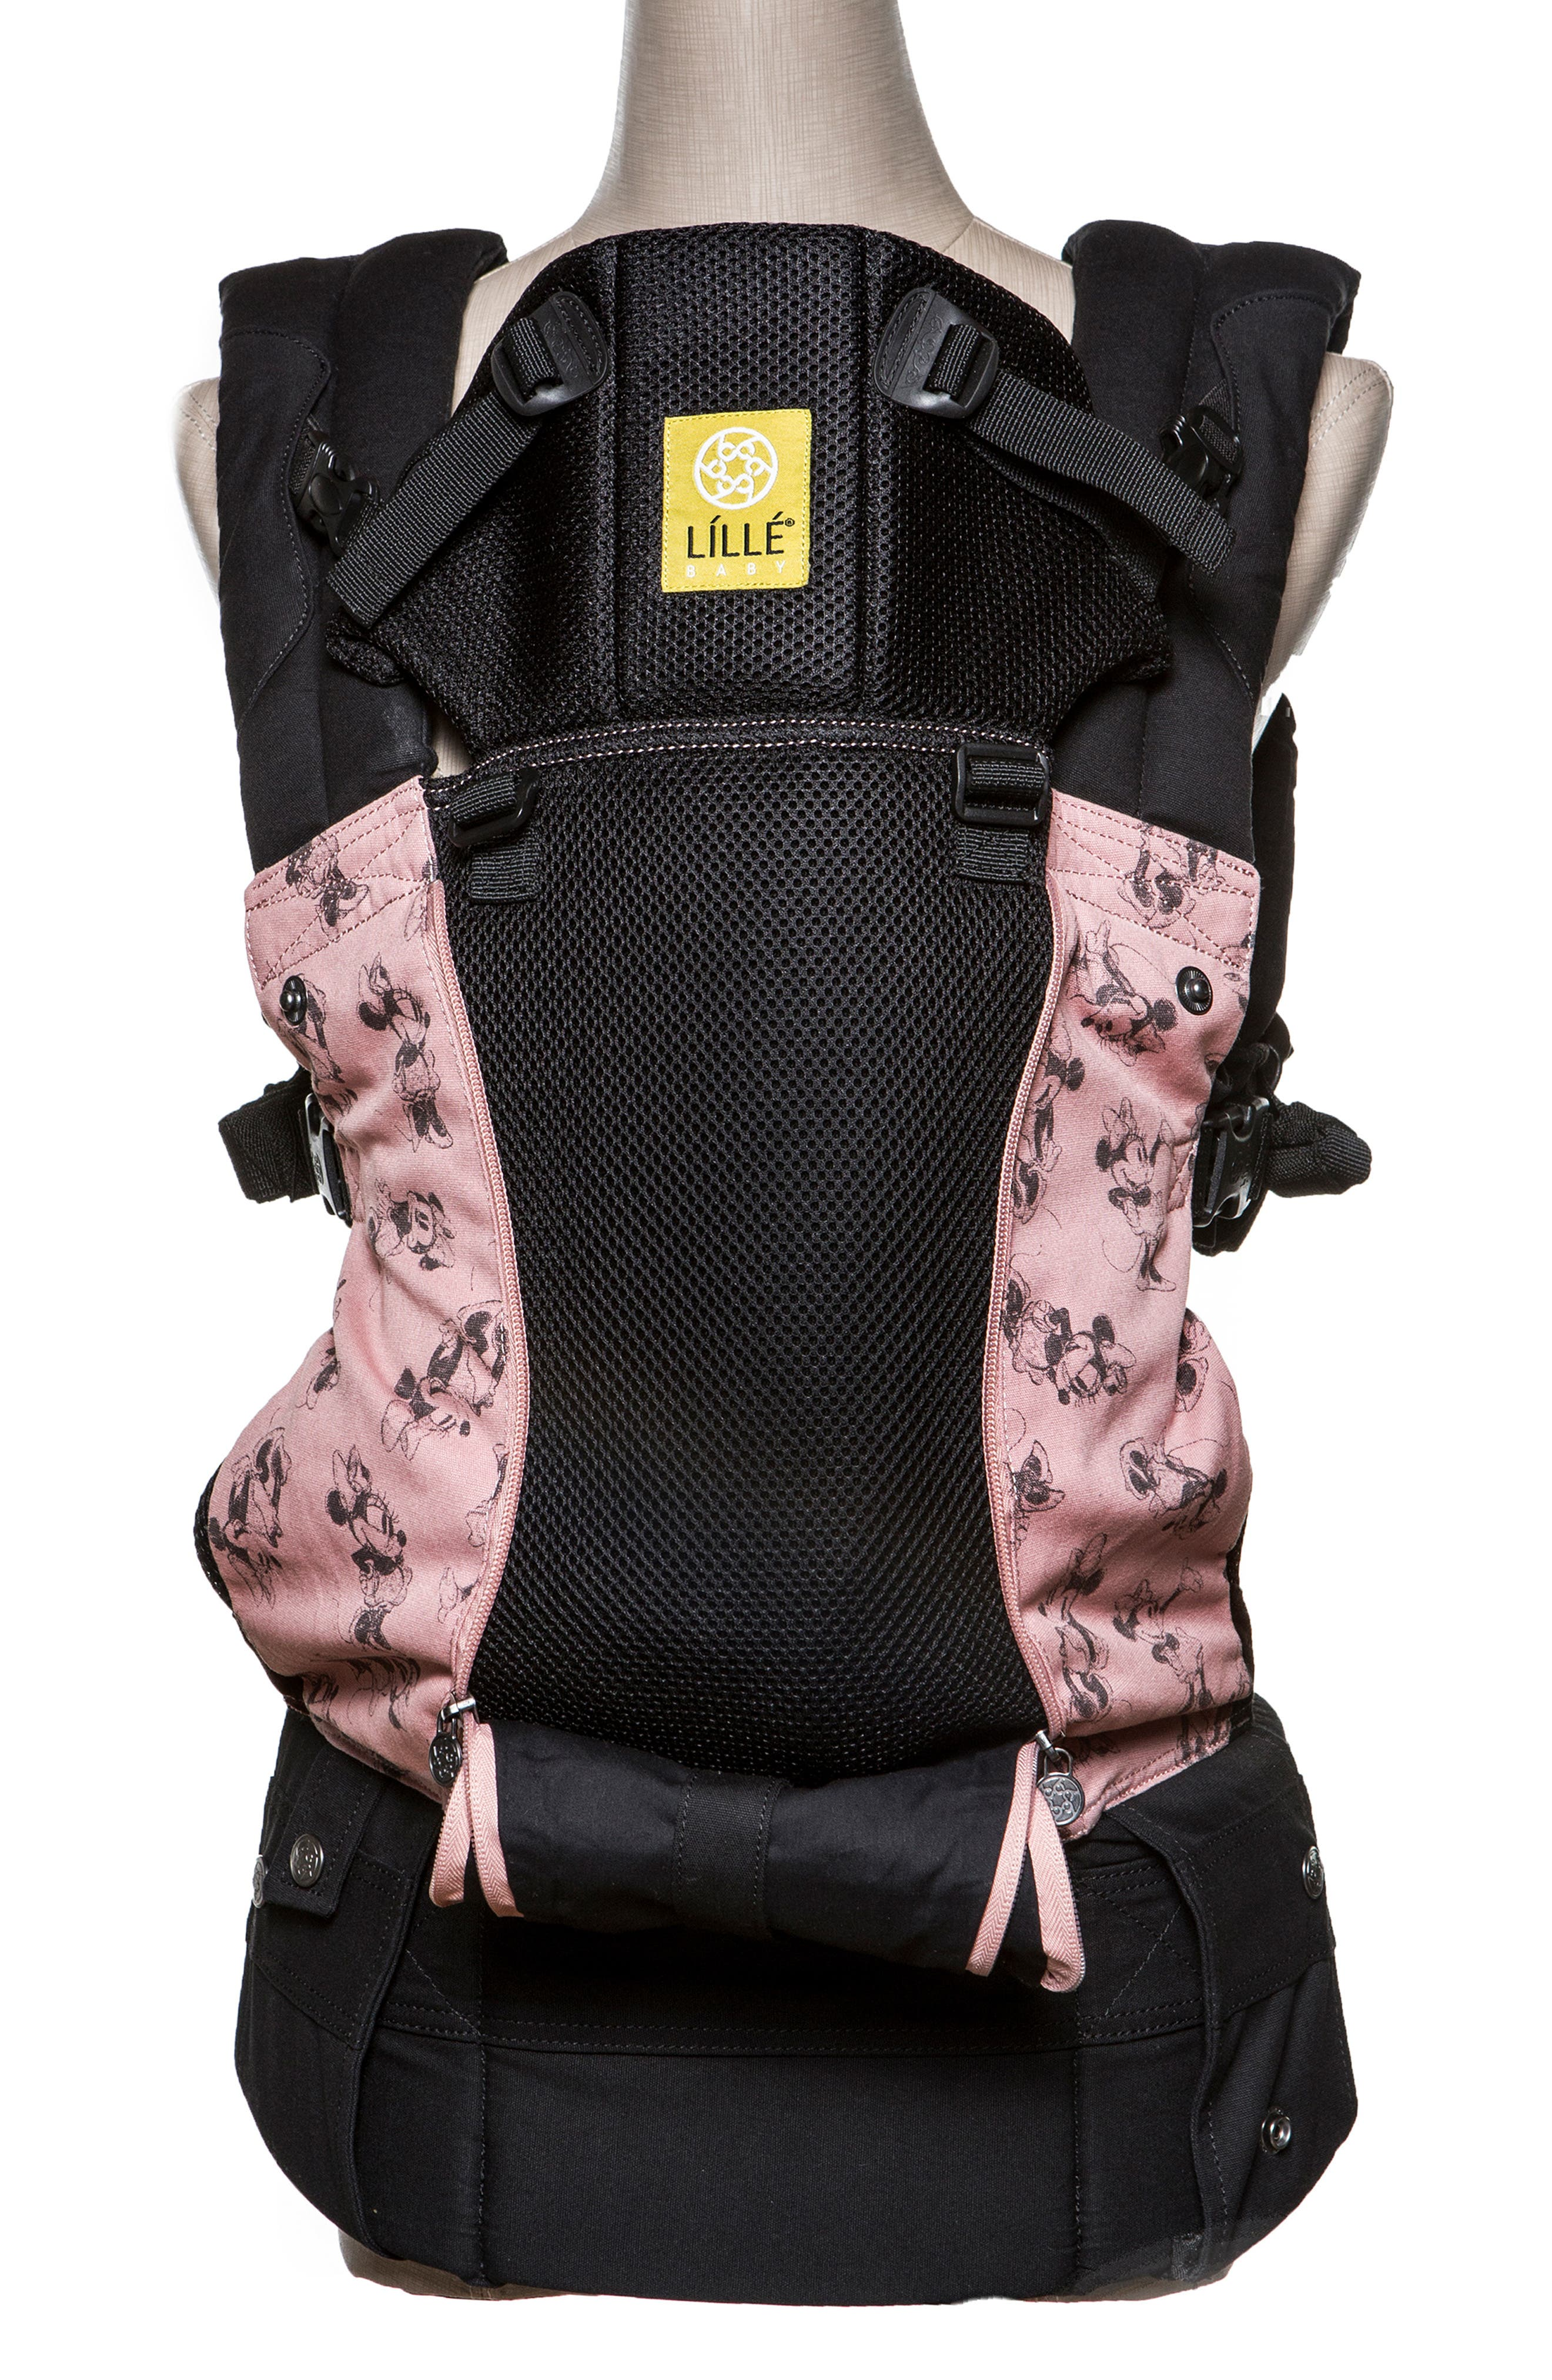 x Disney Complete All Seasons - Minnie Mouse Baby Carrier,                             Alternate thumbnail 2, color,                             PINK